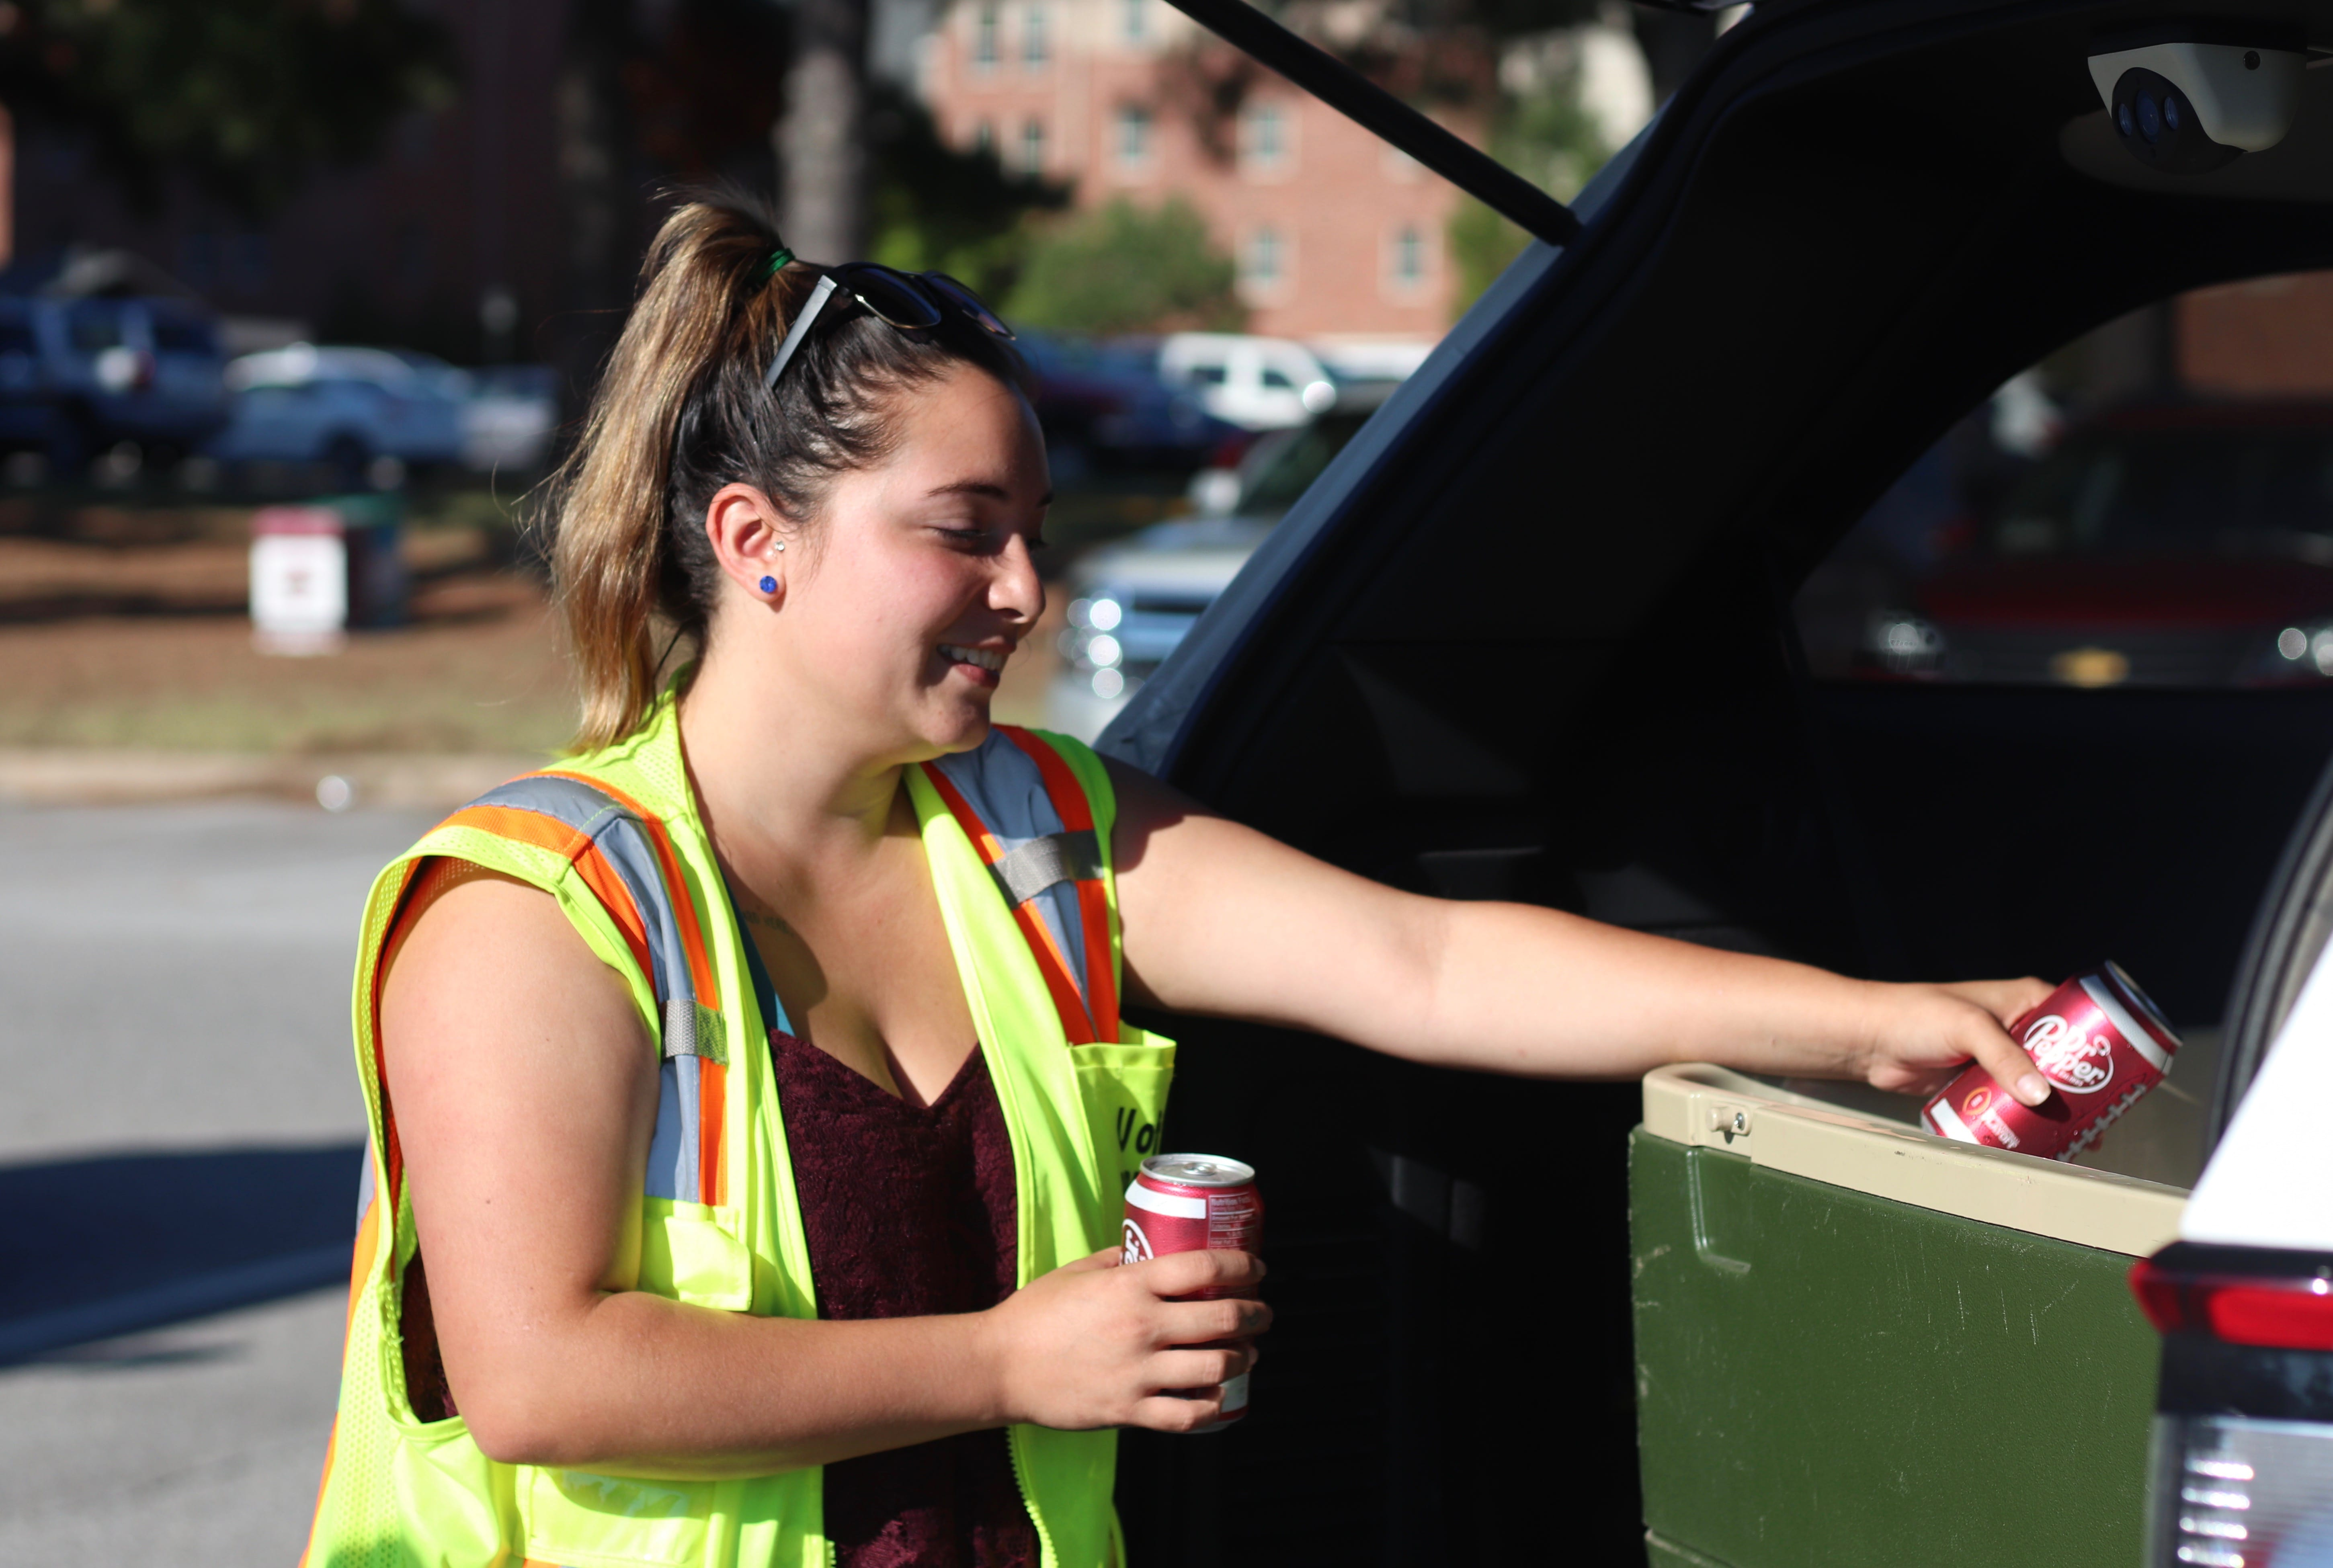 A parking employee getting a soda from a cooler